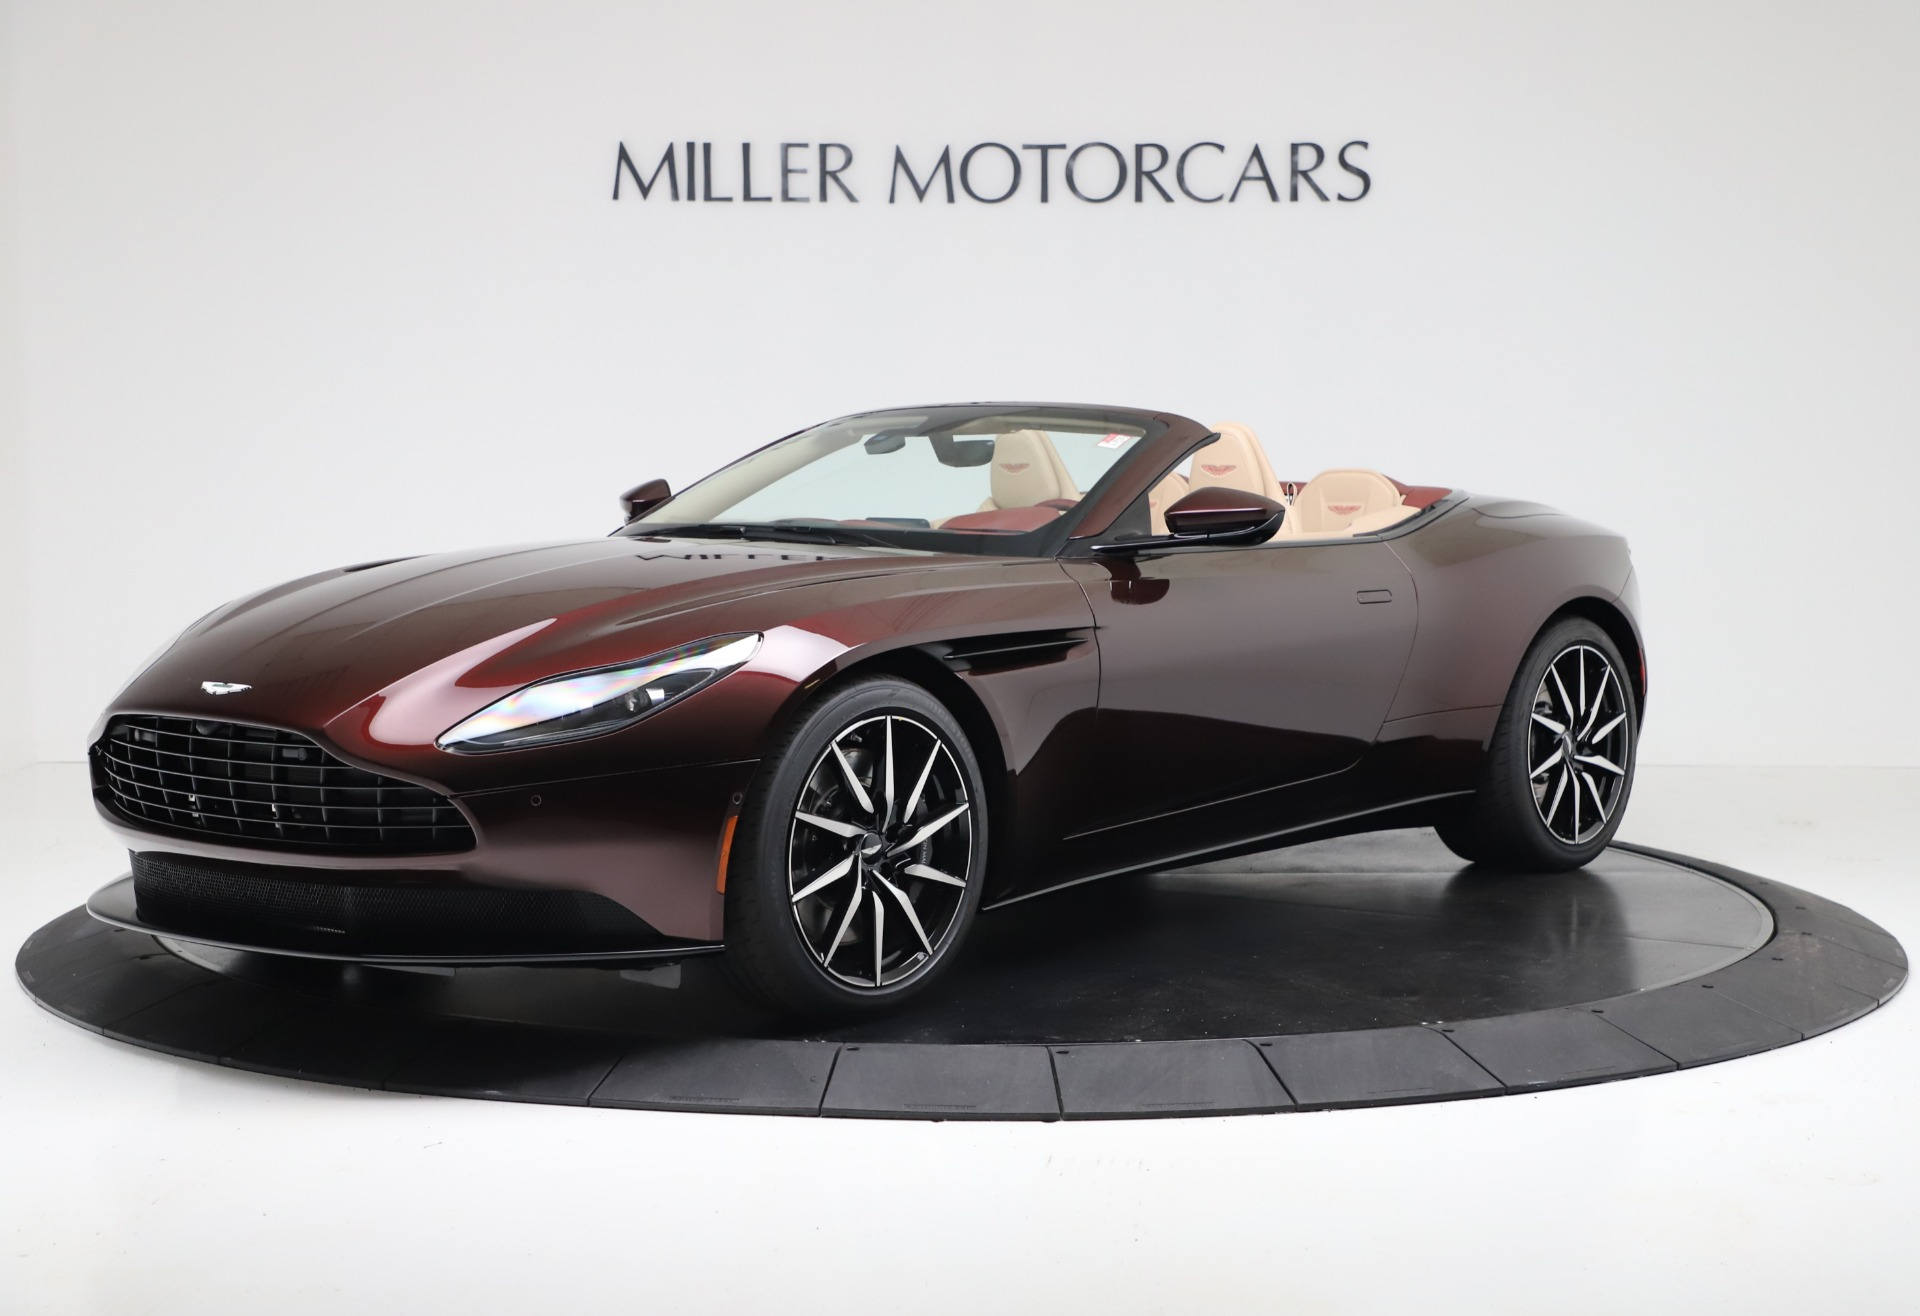 Pre Owned 2020 Aston Martin Db11 Volante Convertible For Sale 217 900 Miller Motorcars Stock 7905